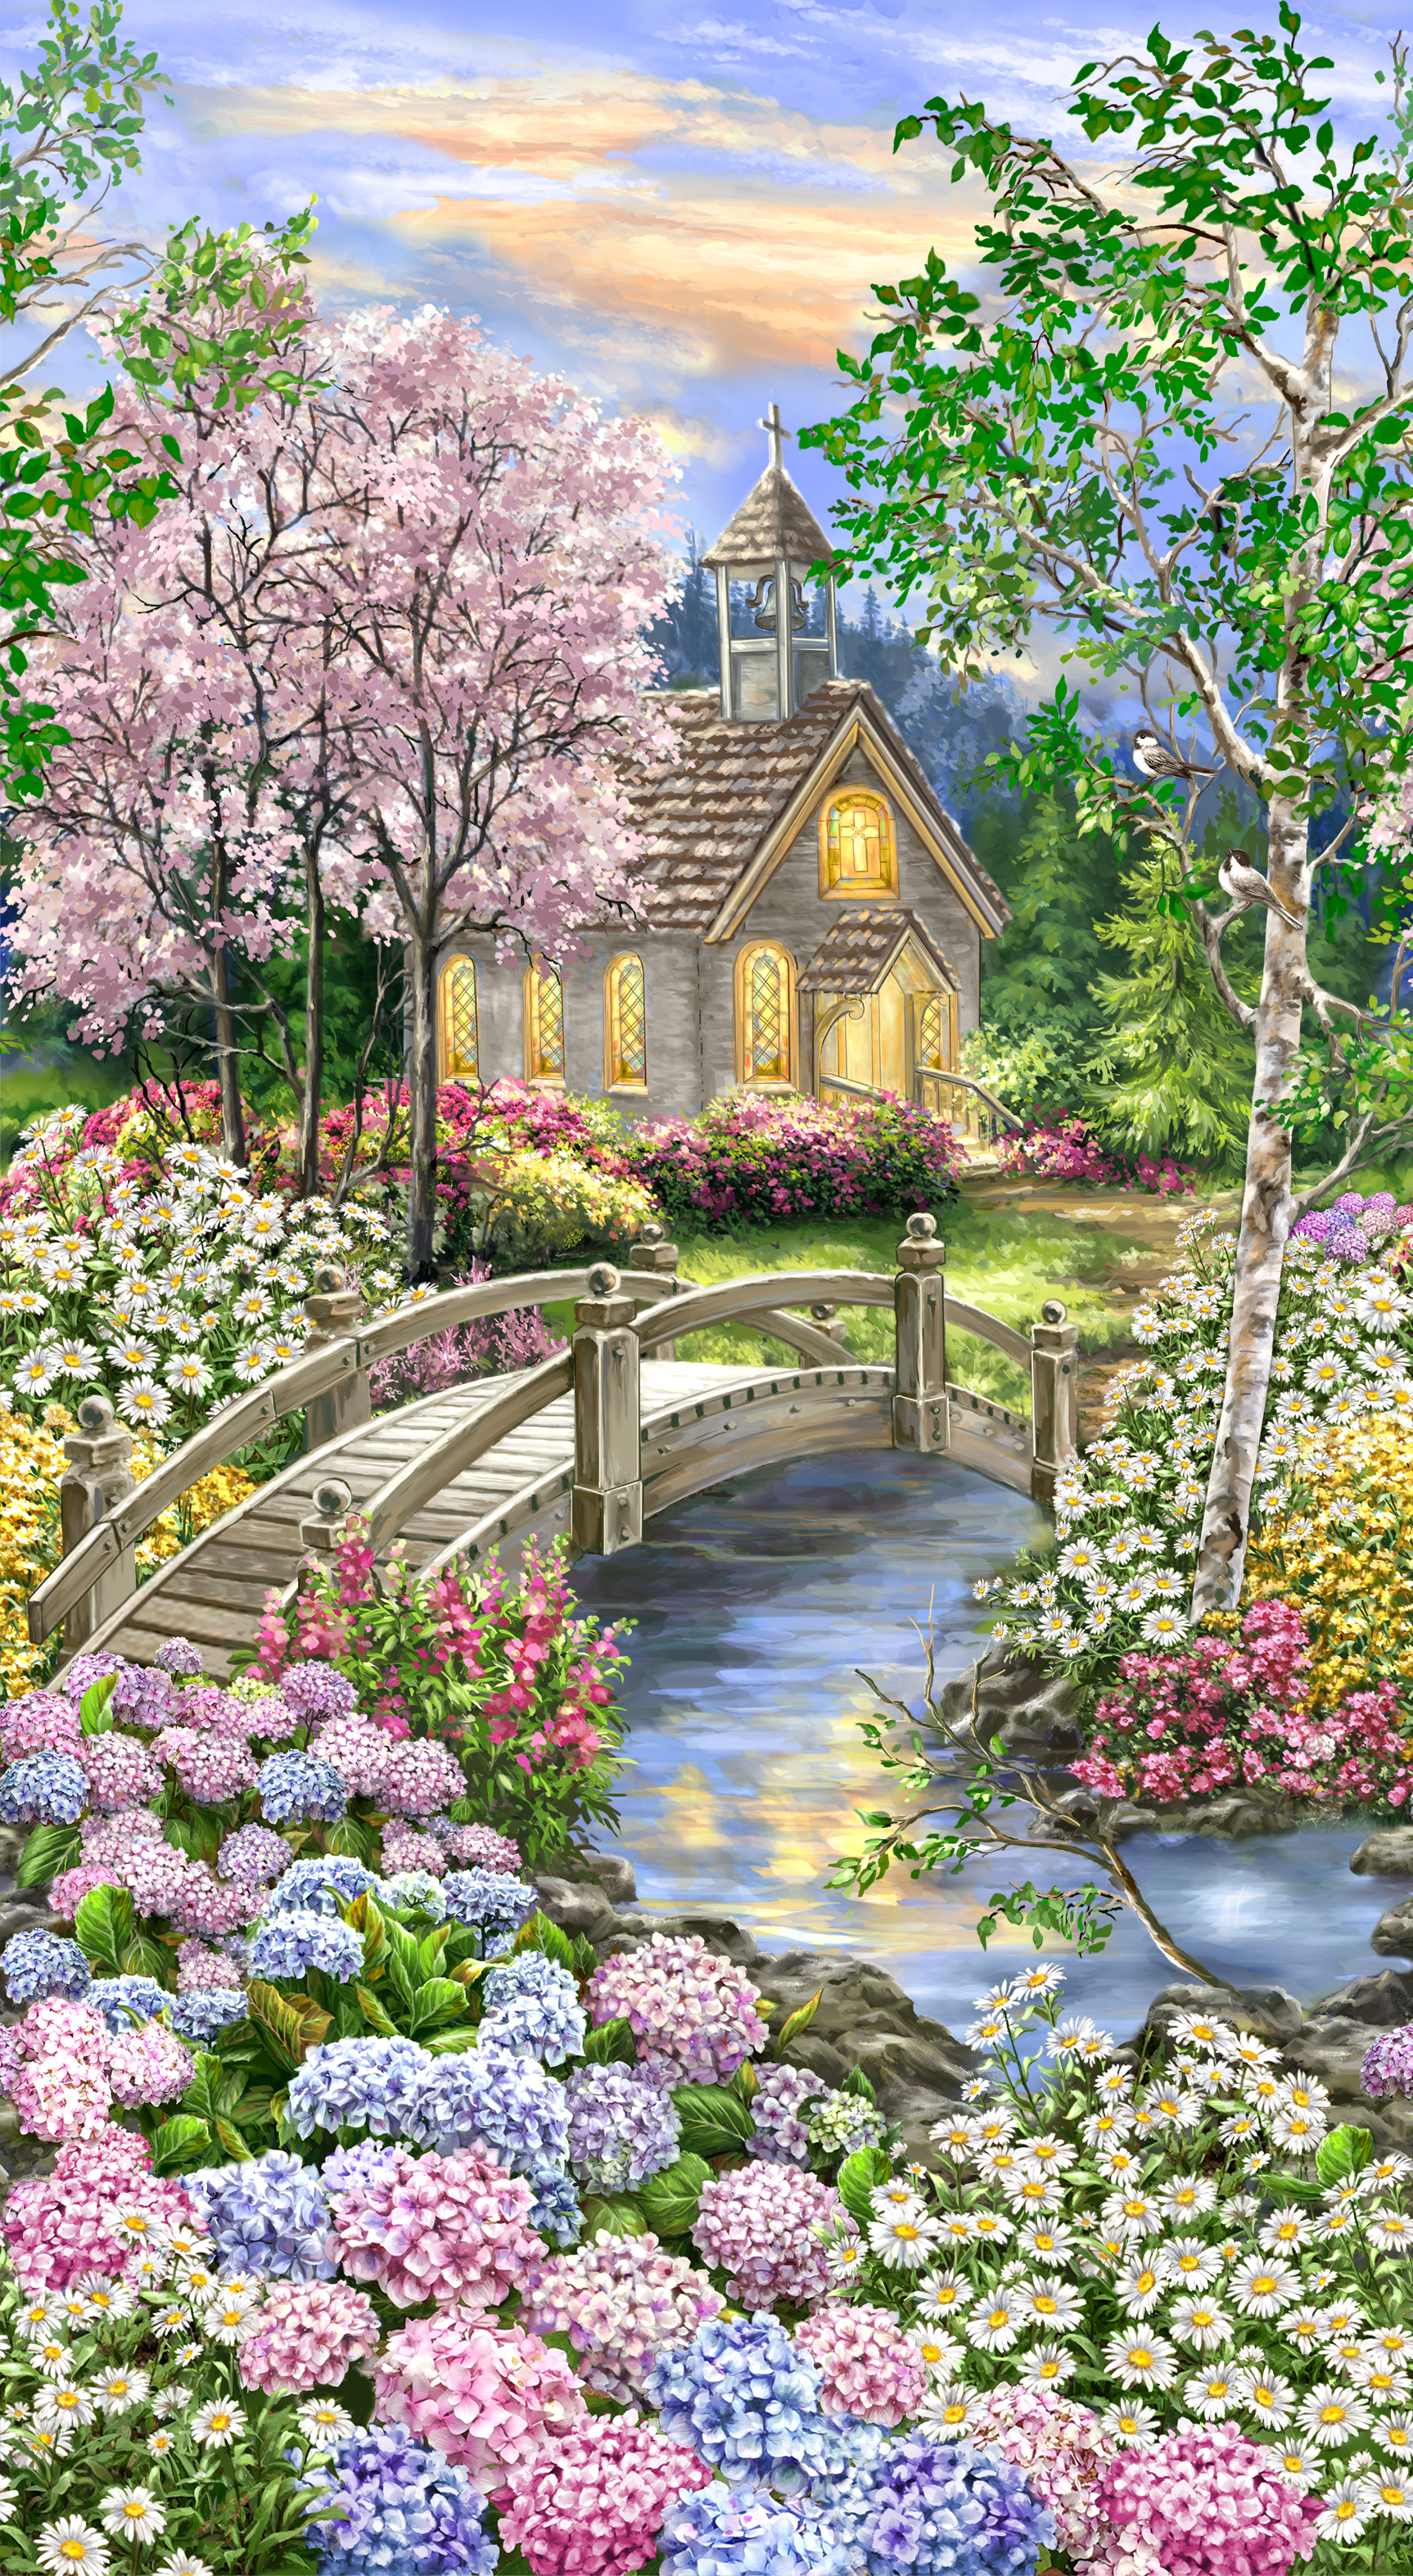 Peaceful Garden - Blooming Forest Chapel - Panel